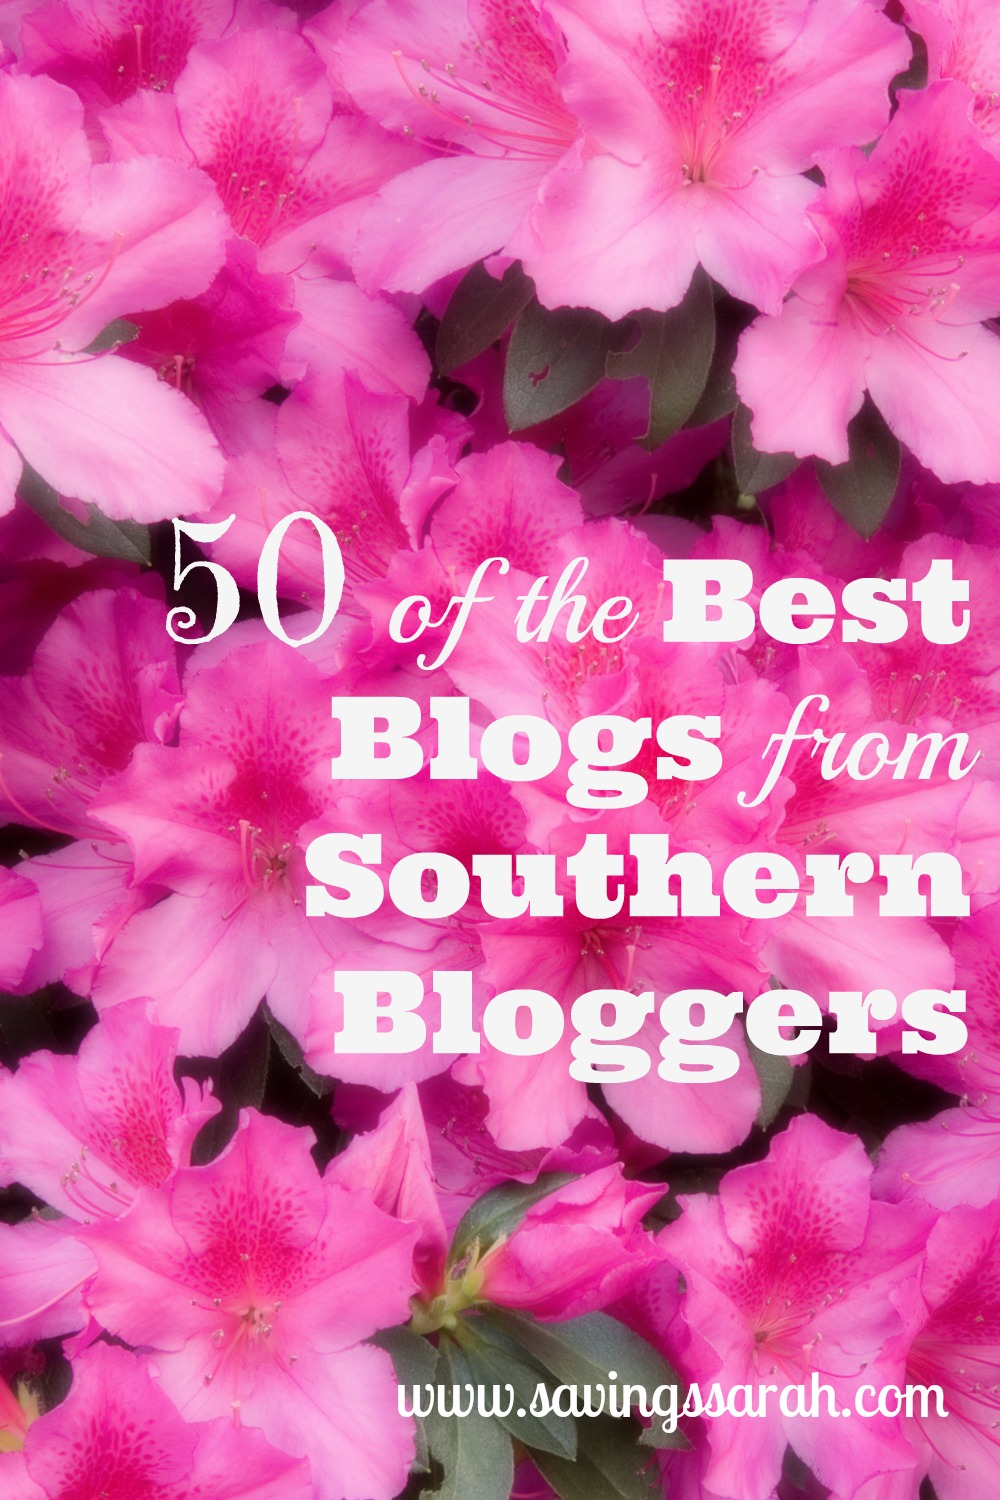 50 of the Best Blogs from Southern Bloggers